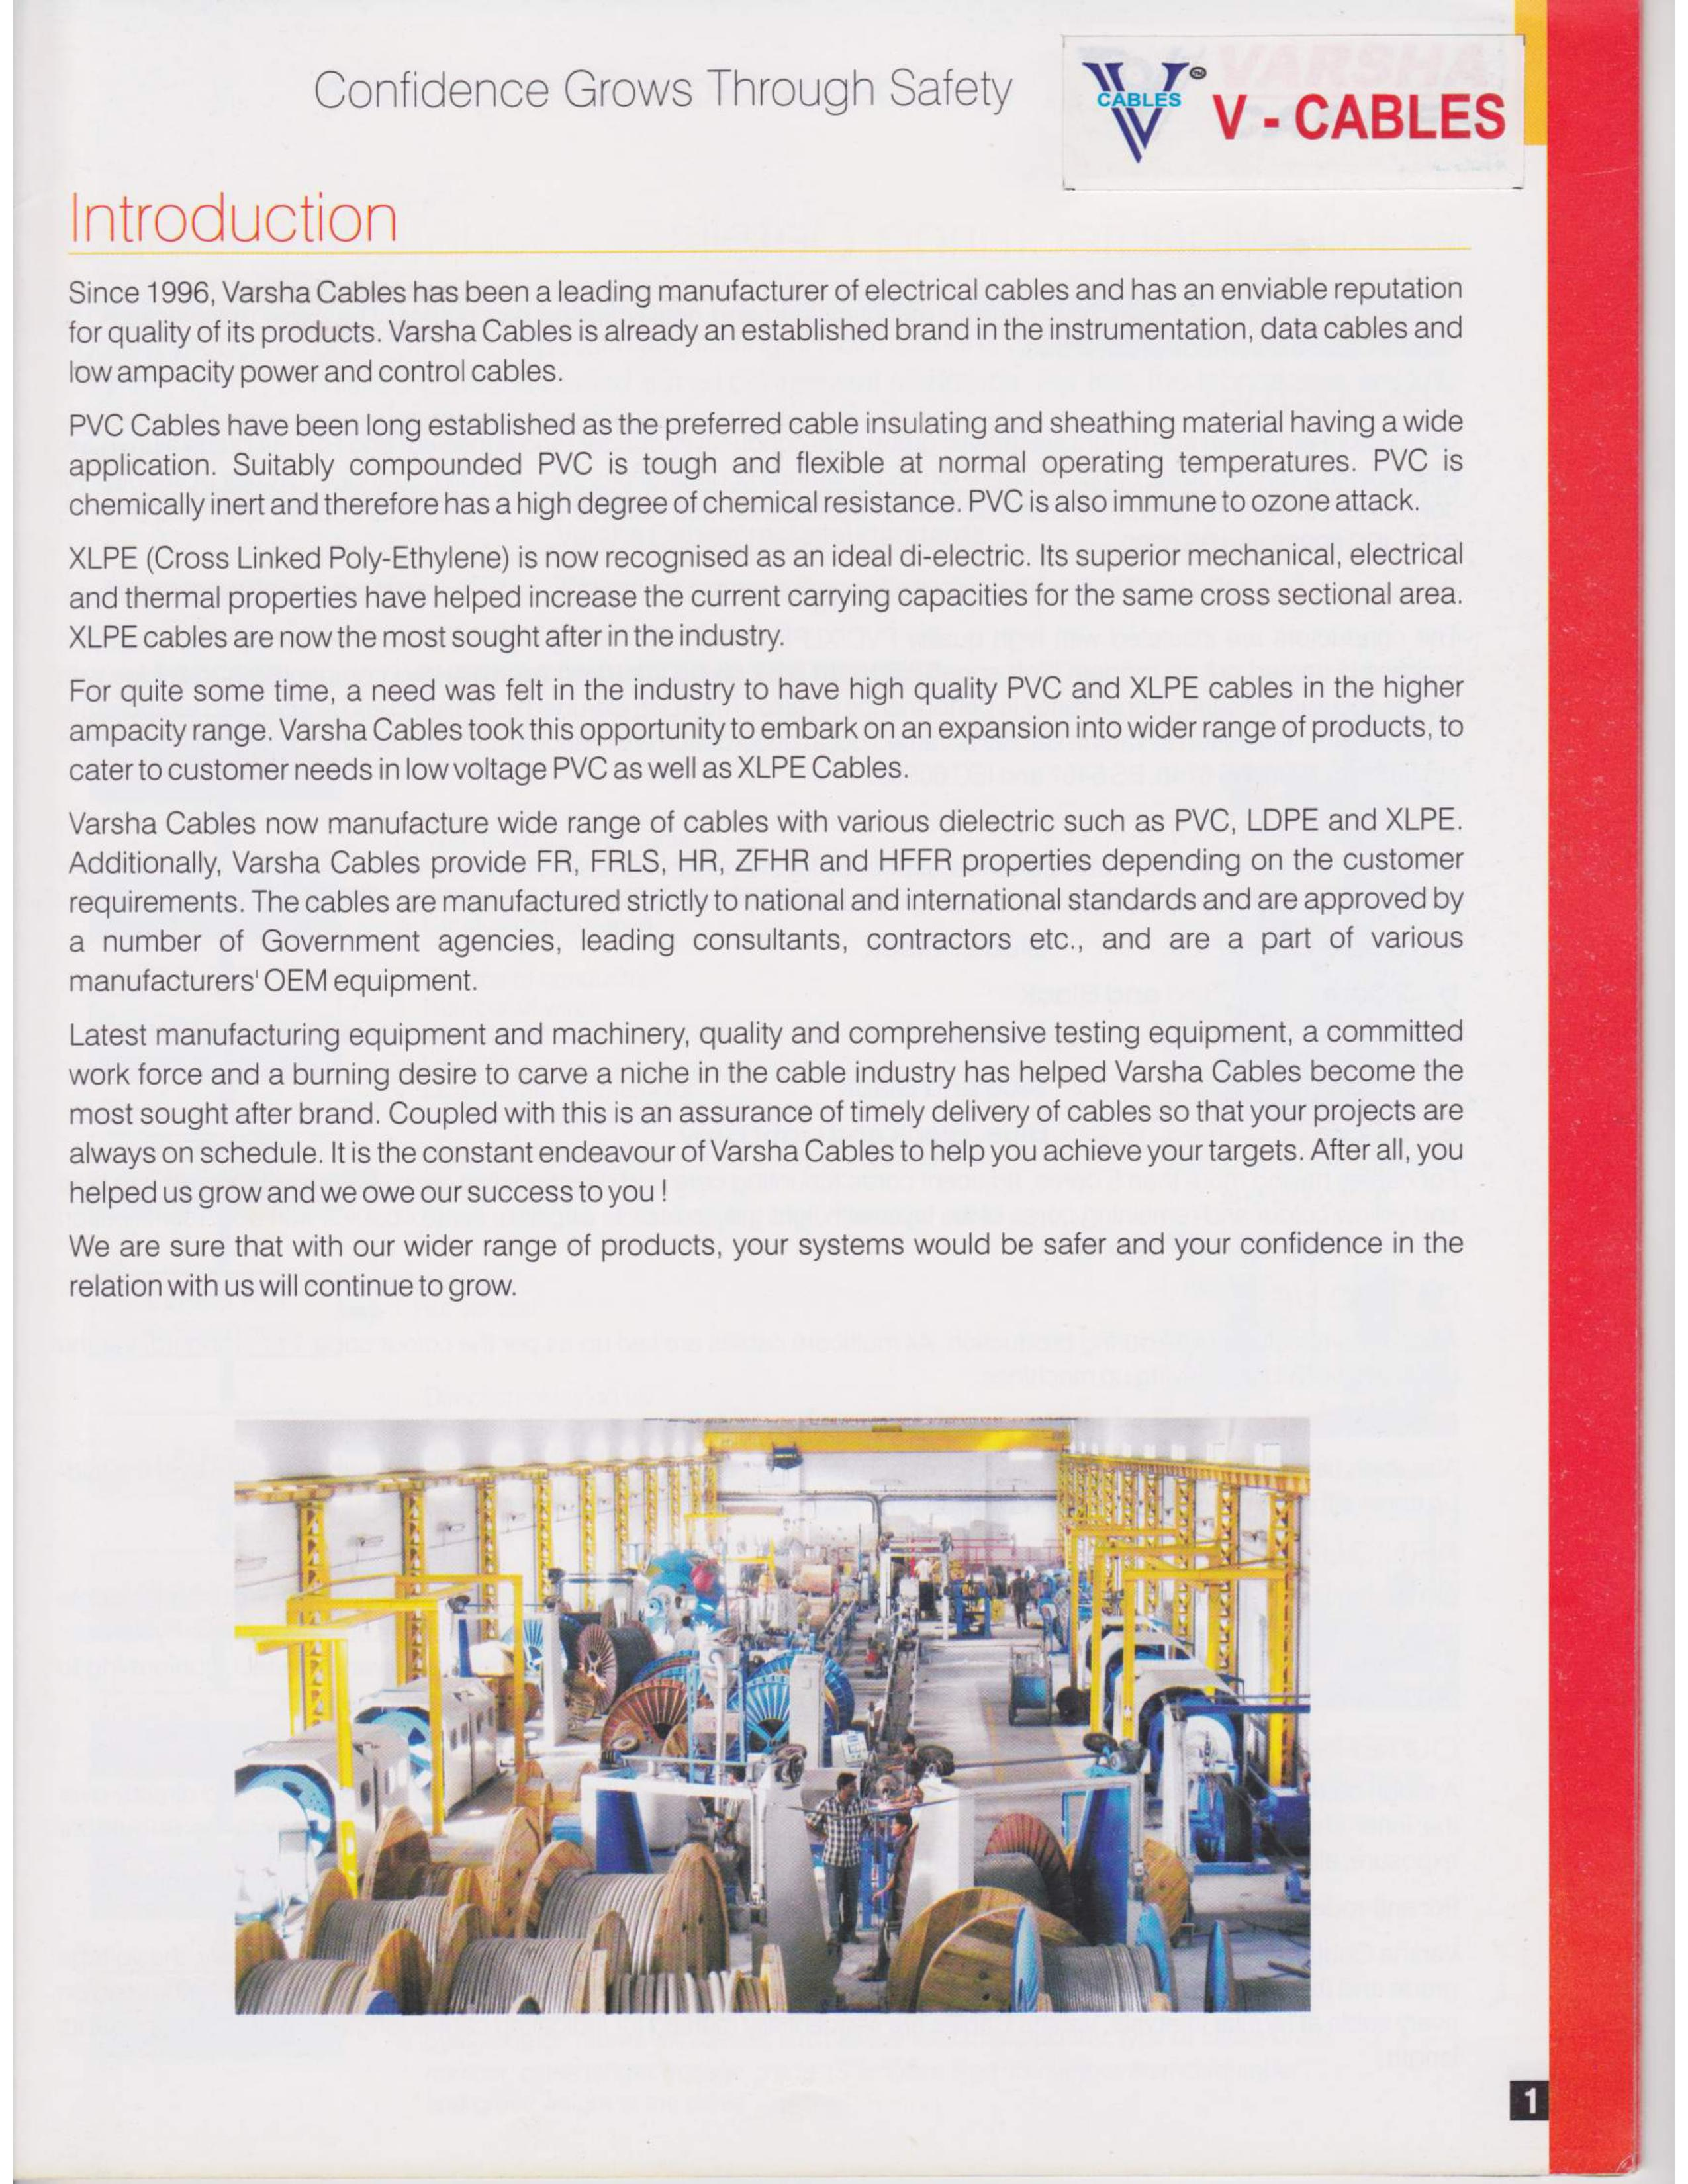 About | Varsha Cables Pvt. Ltd.